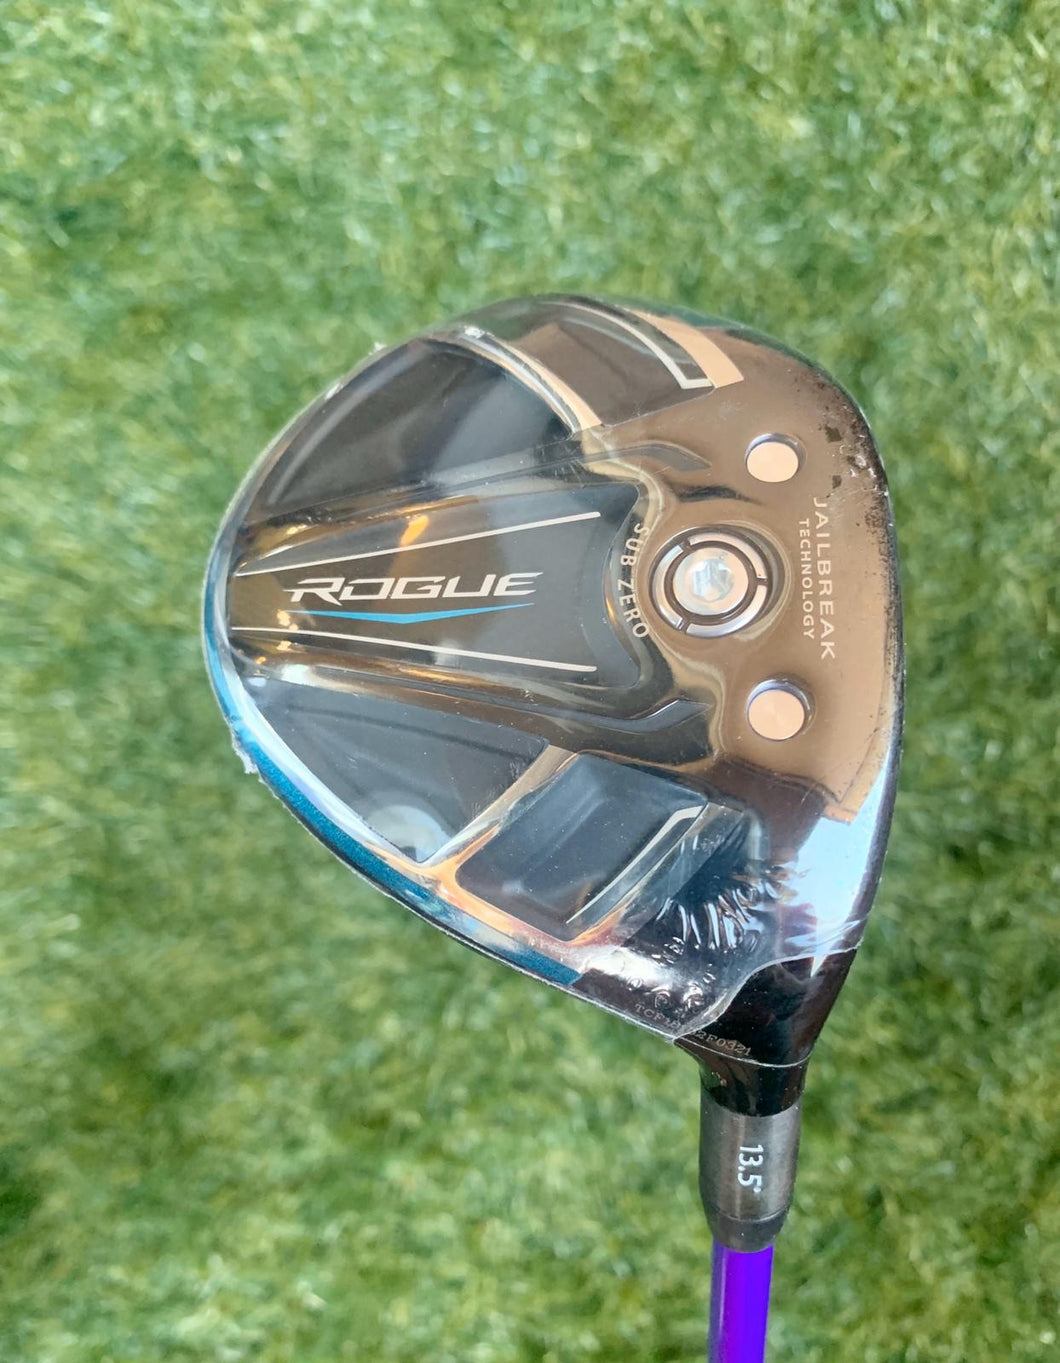 Tour Issue Callaway Rogue 13.5* Fairway Wood, RH, Oban Kiyoshi Purple 05 75g   Shaft....NEW!!